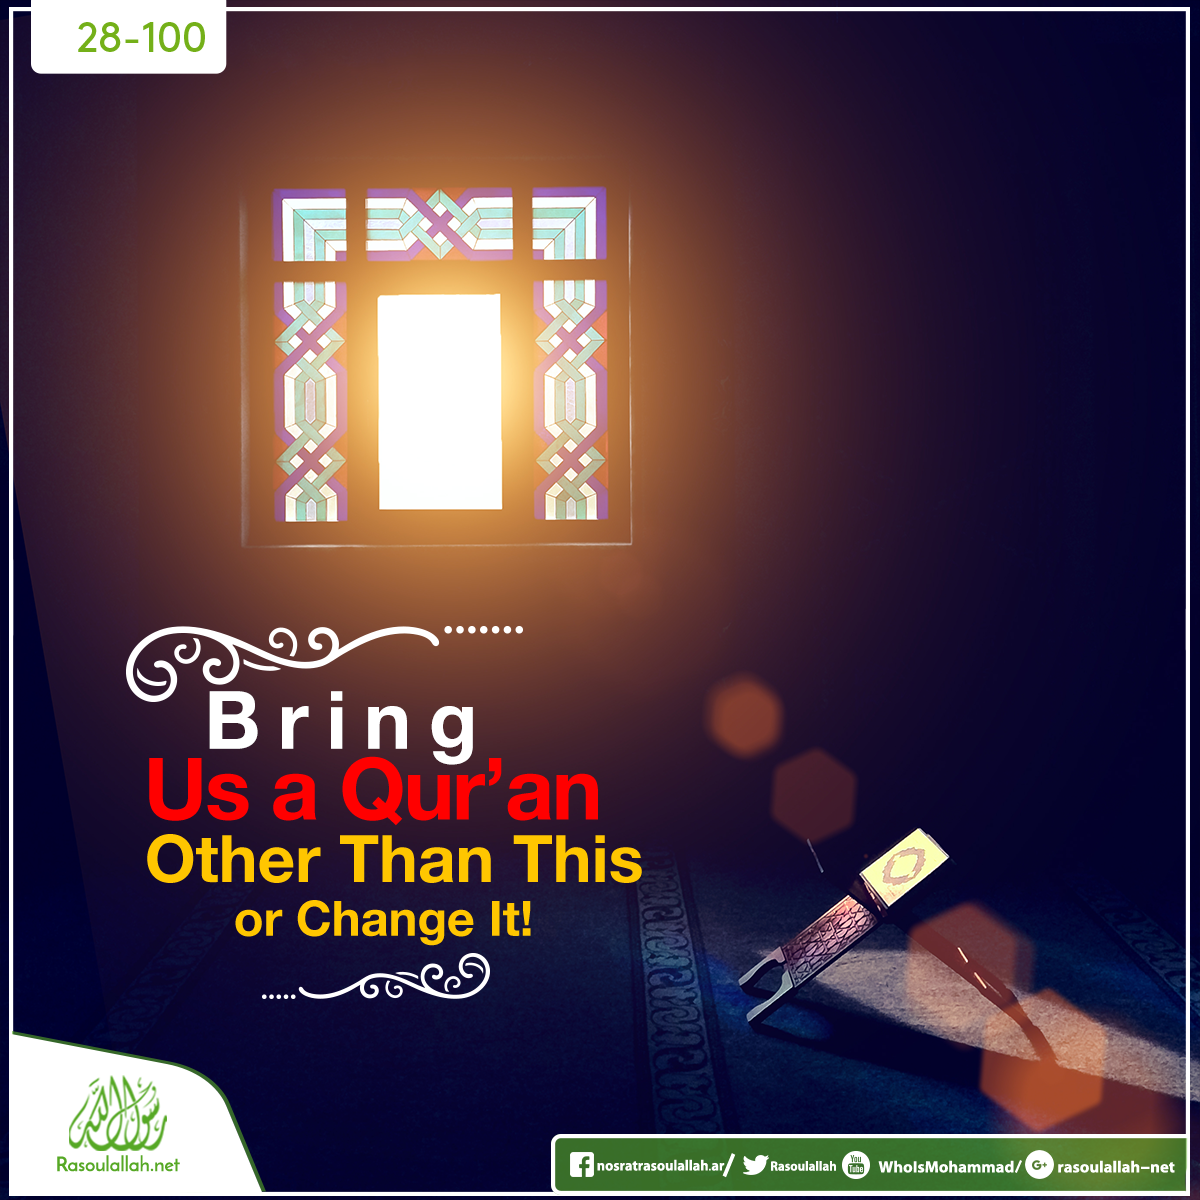 Bring us a Qur'an other than this or change it!